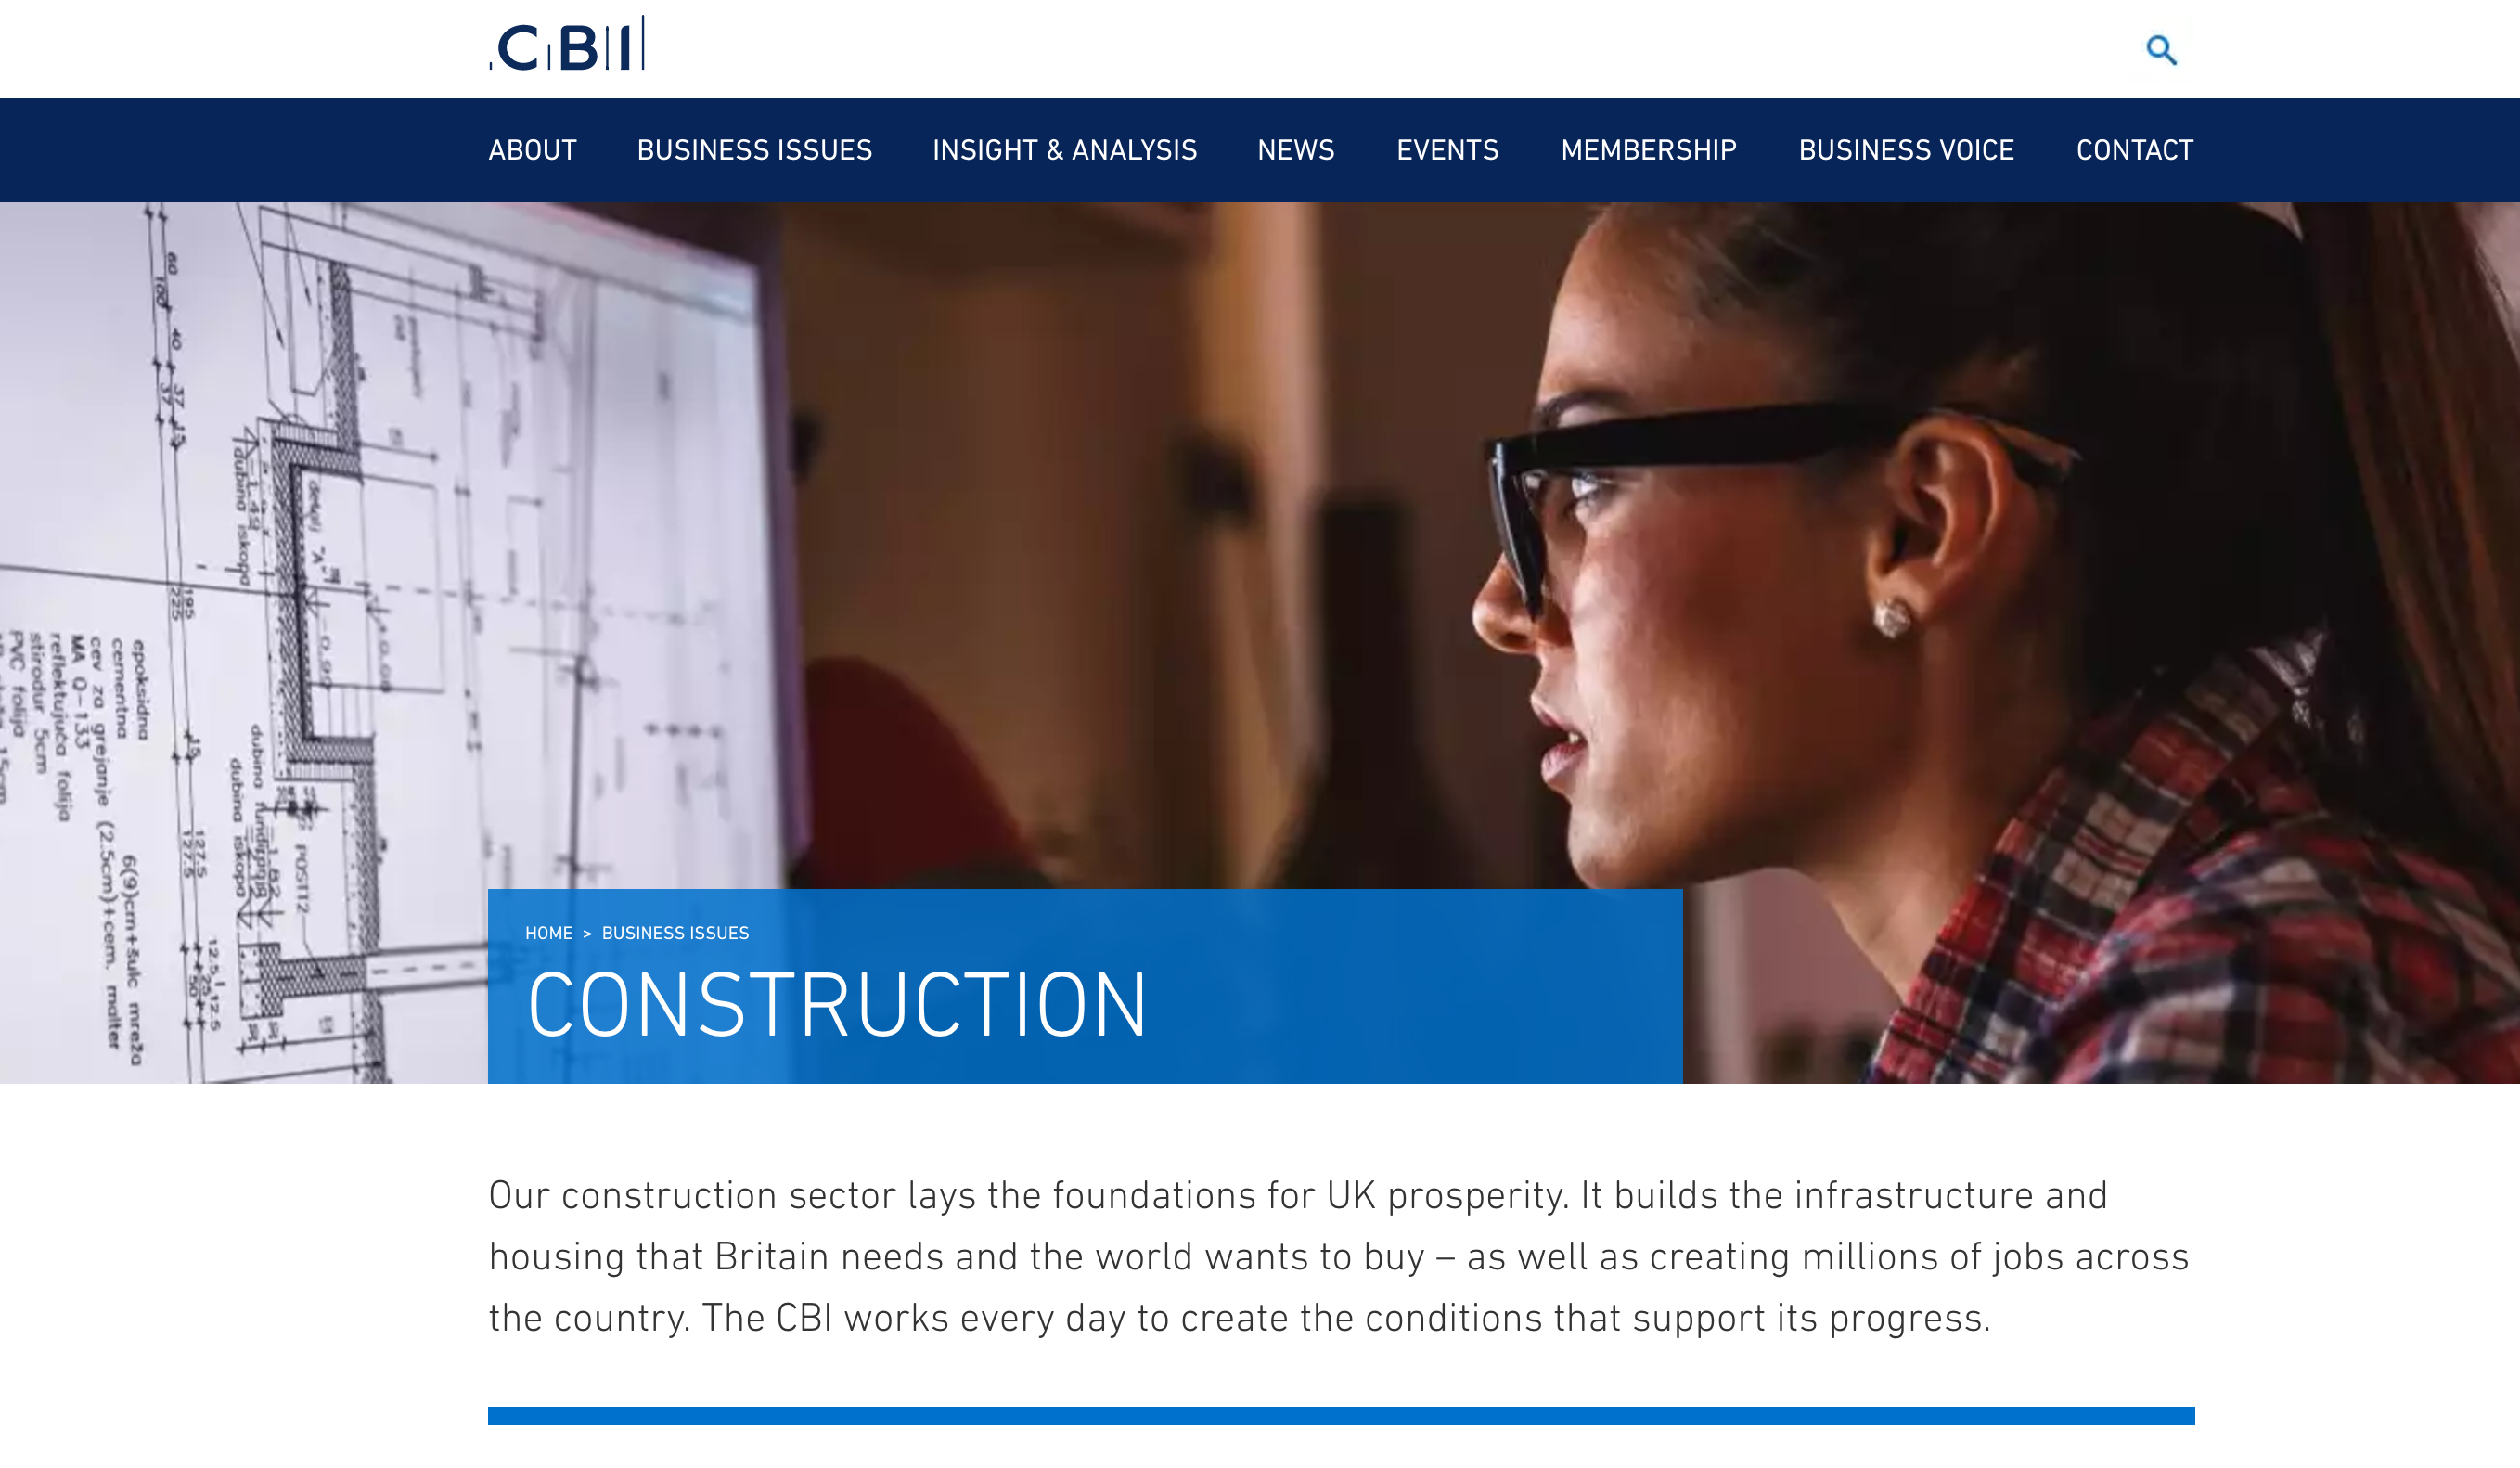 CBI: 50 years of influence in the construction sector of UK